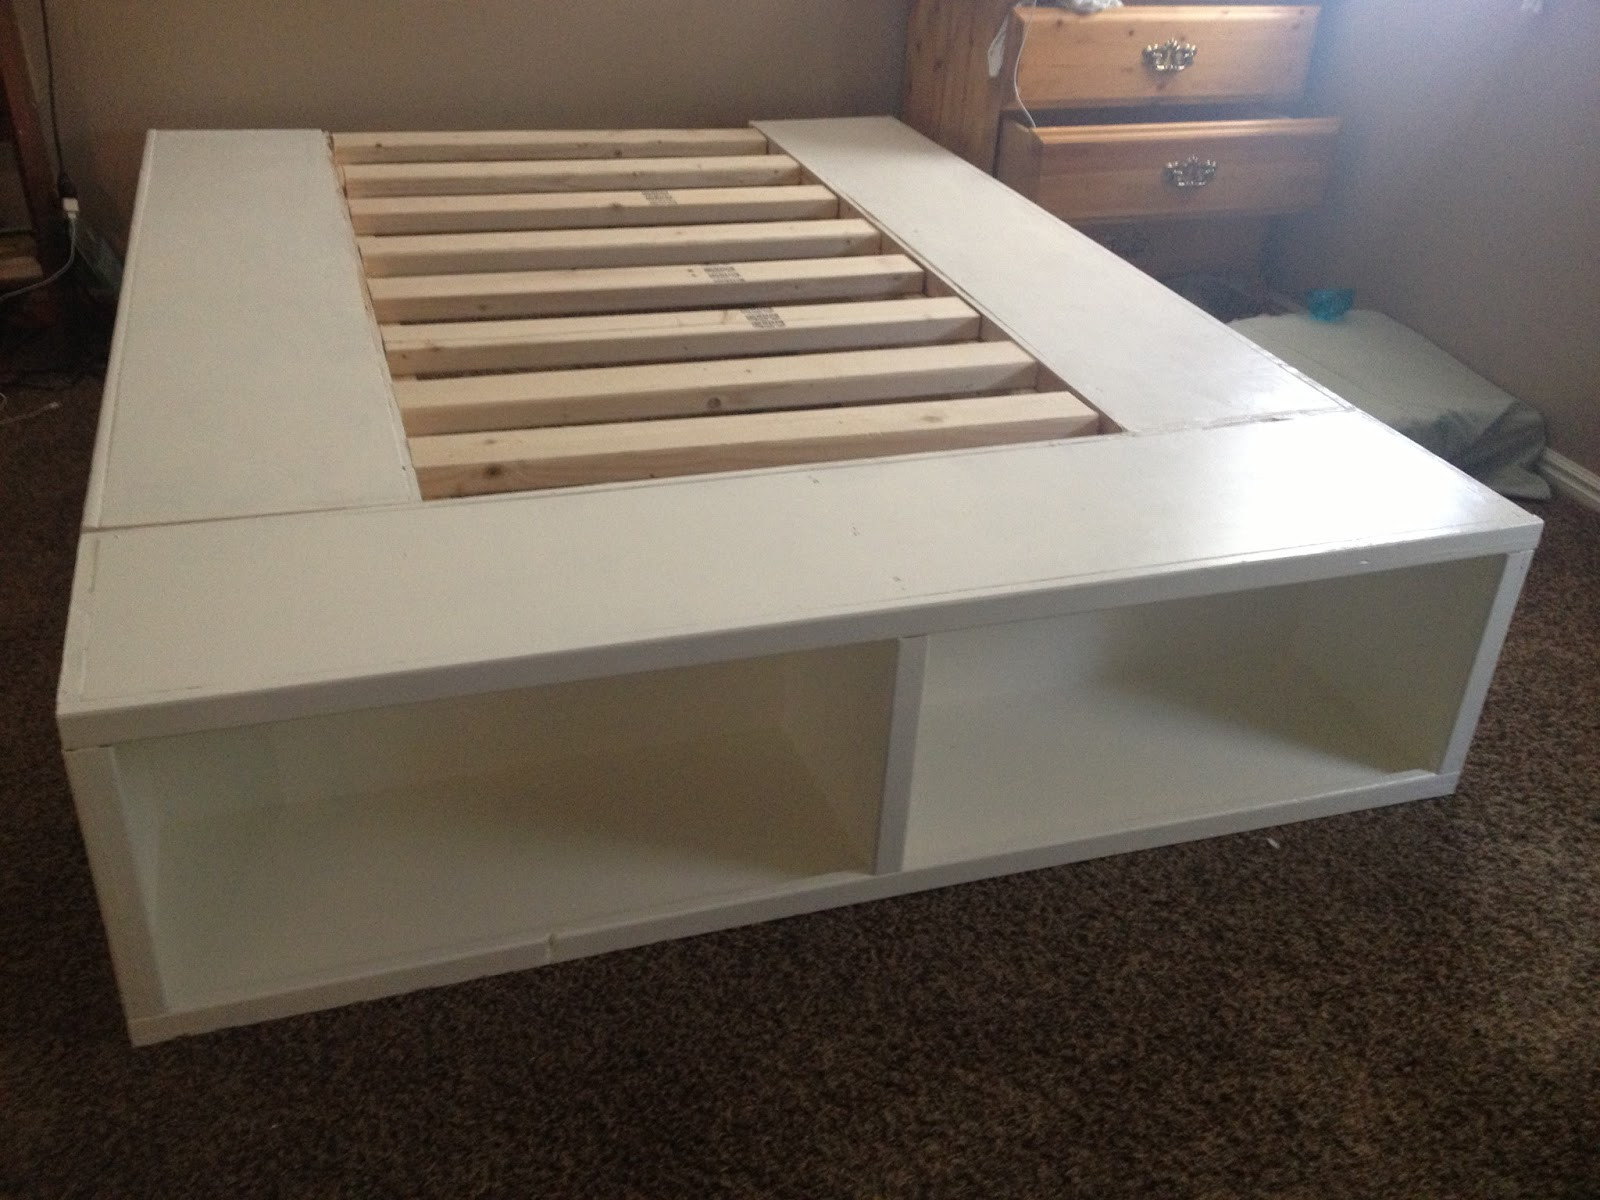 Best ideas about DIY Storage Bed Plans . Save or Pin DIY Storage Bed Now.